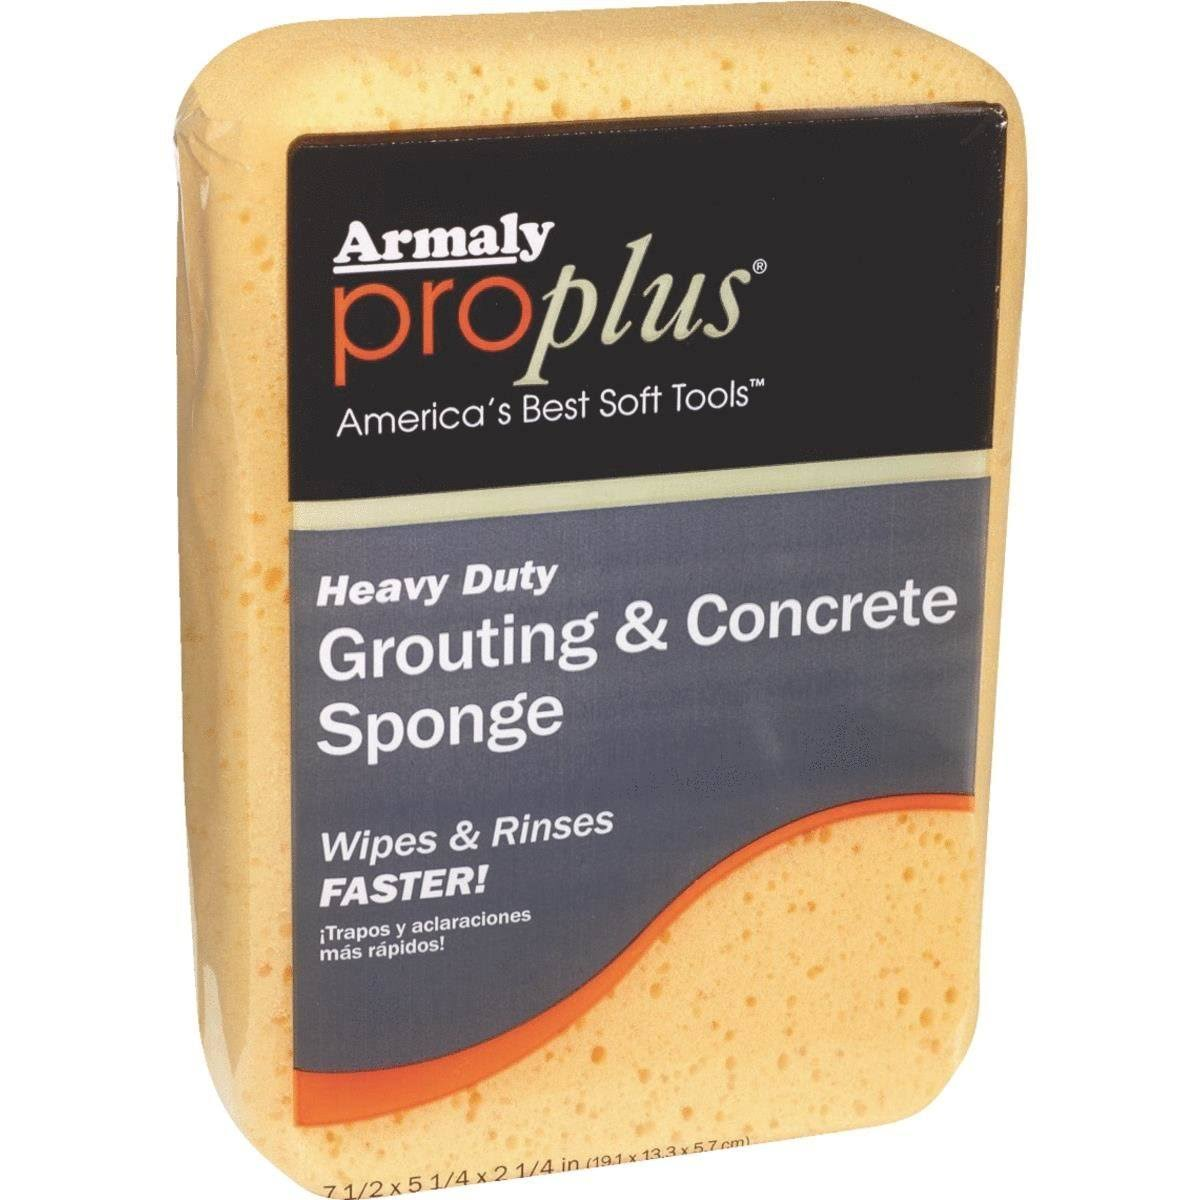 Armaly Proplus Sanded Grouting And Concrete Sponge